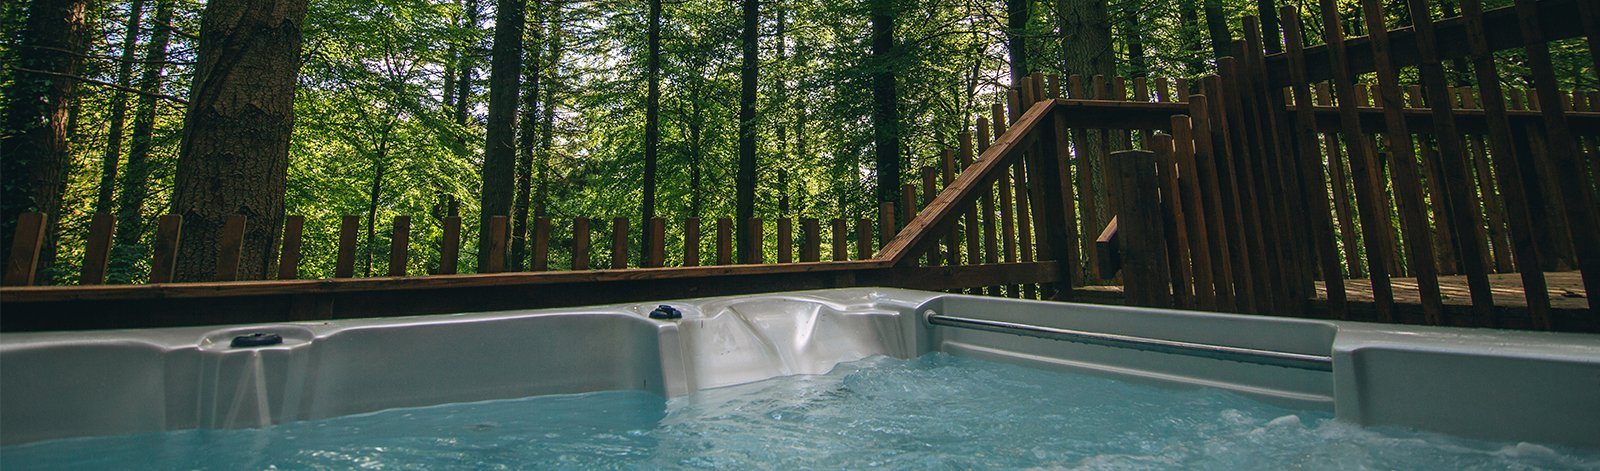 VACATION RENTALS MEANT FOR HOT TUBBING